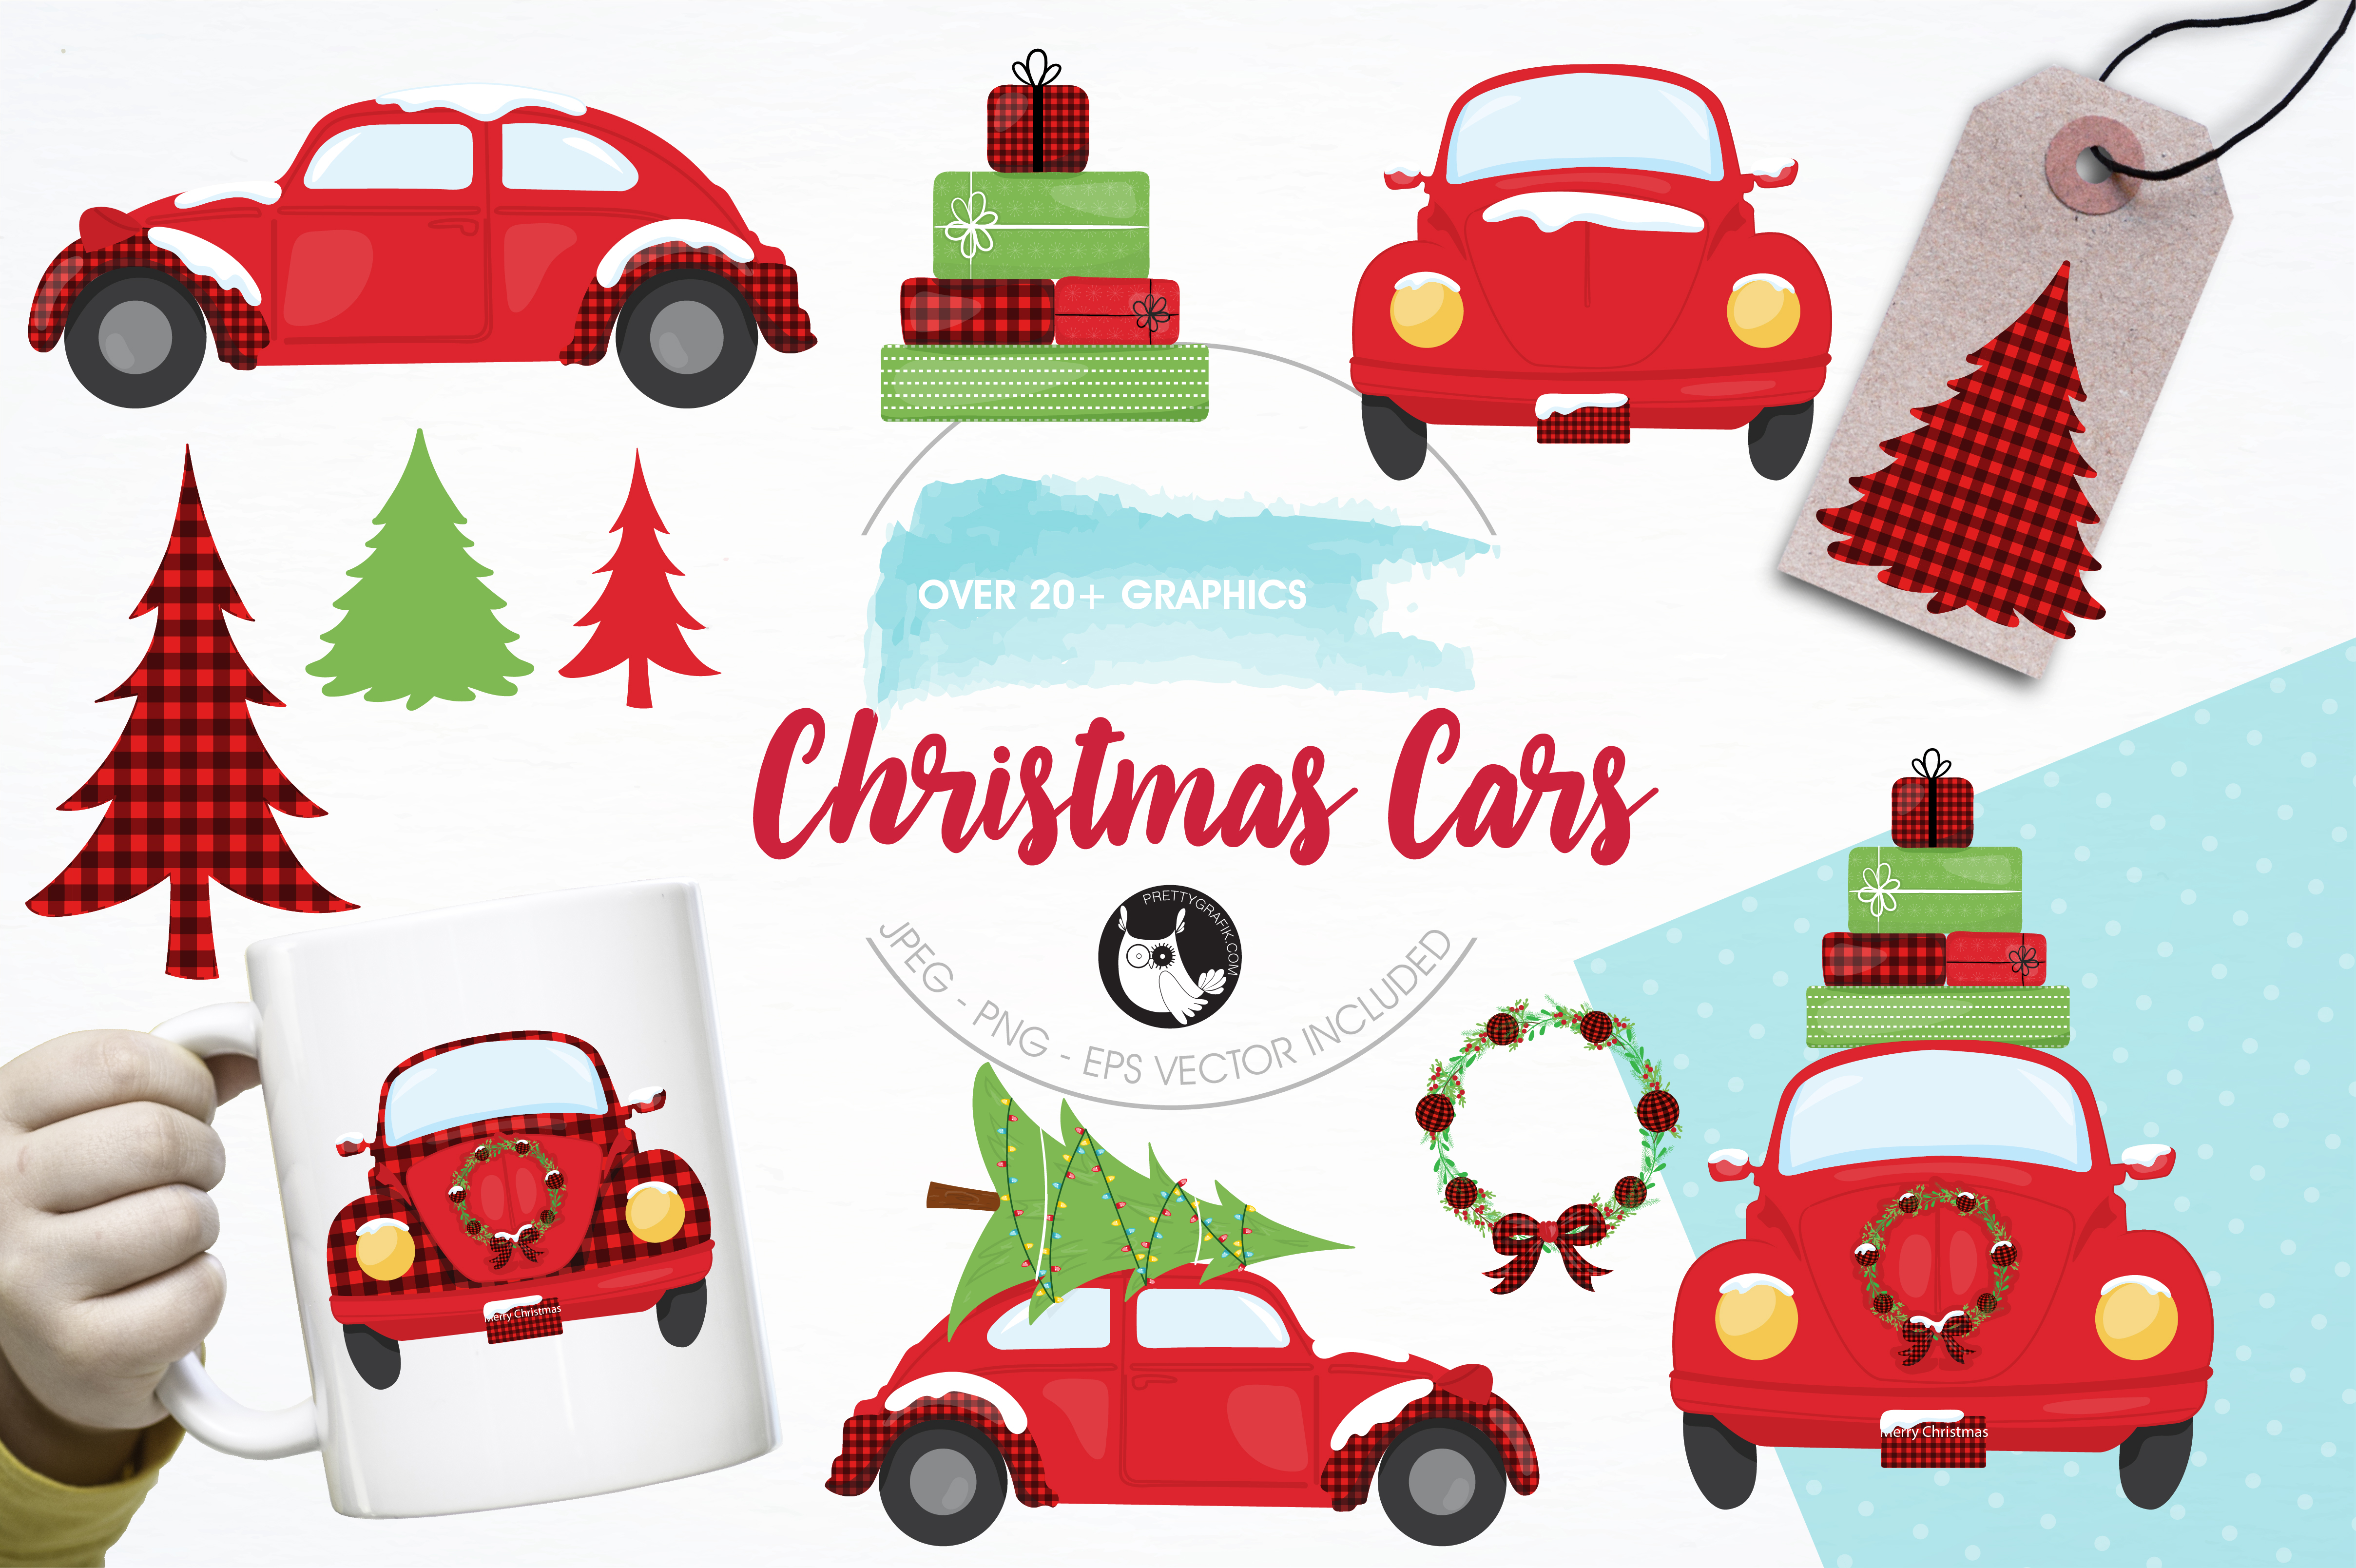 Christmas car clipart image free download Christmas Cars Clipart Set image free download